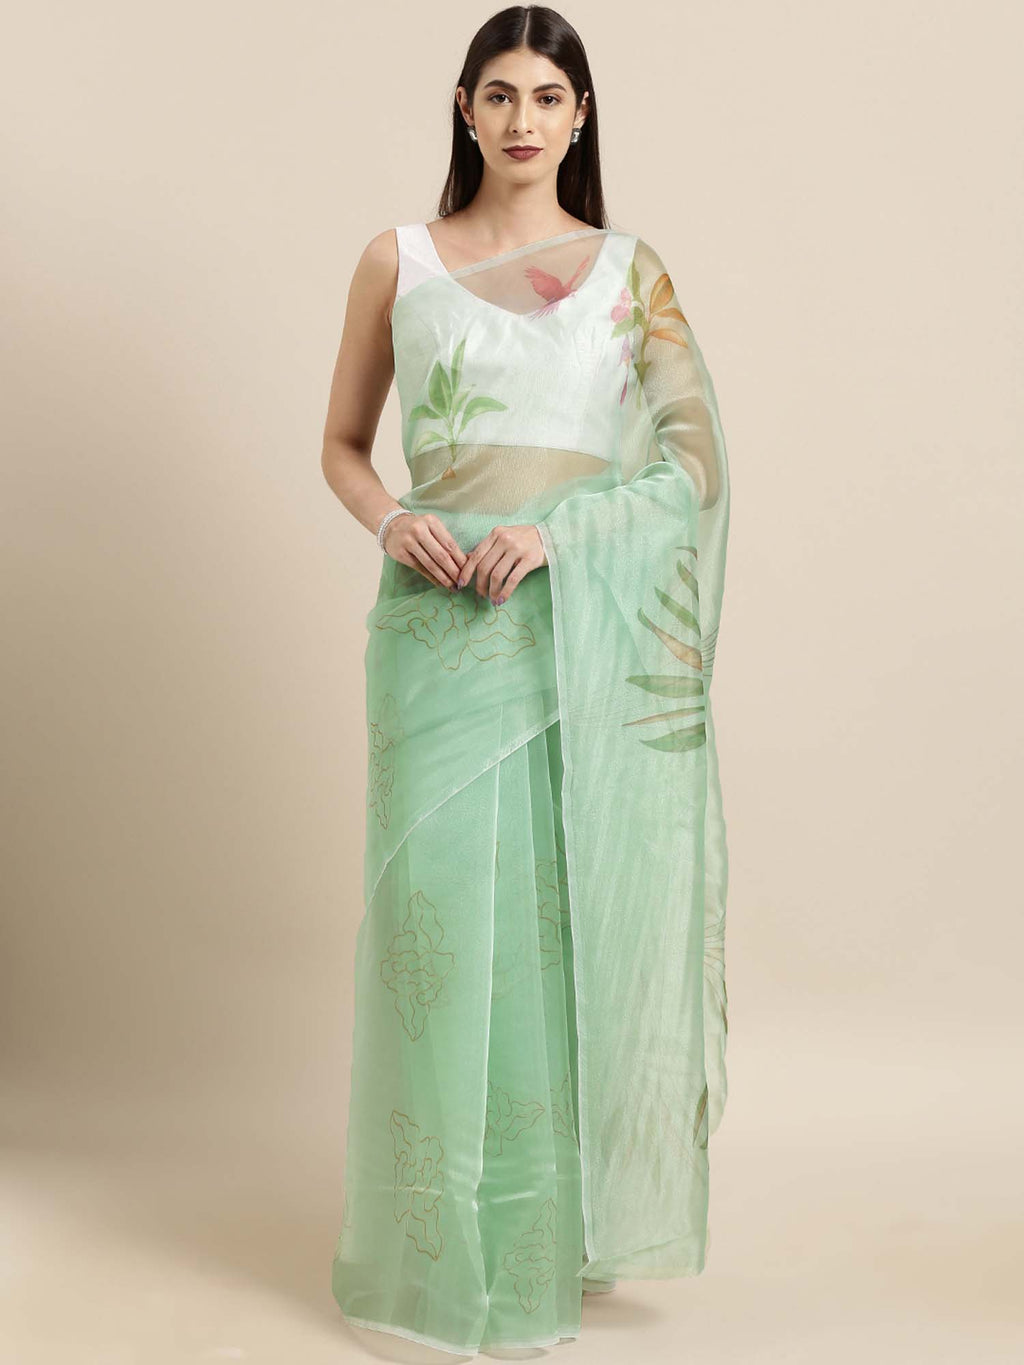 Green Floral Digital Print Design Oraganza Saree With Poly Dupion Blouse - Riviera Closet